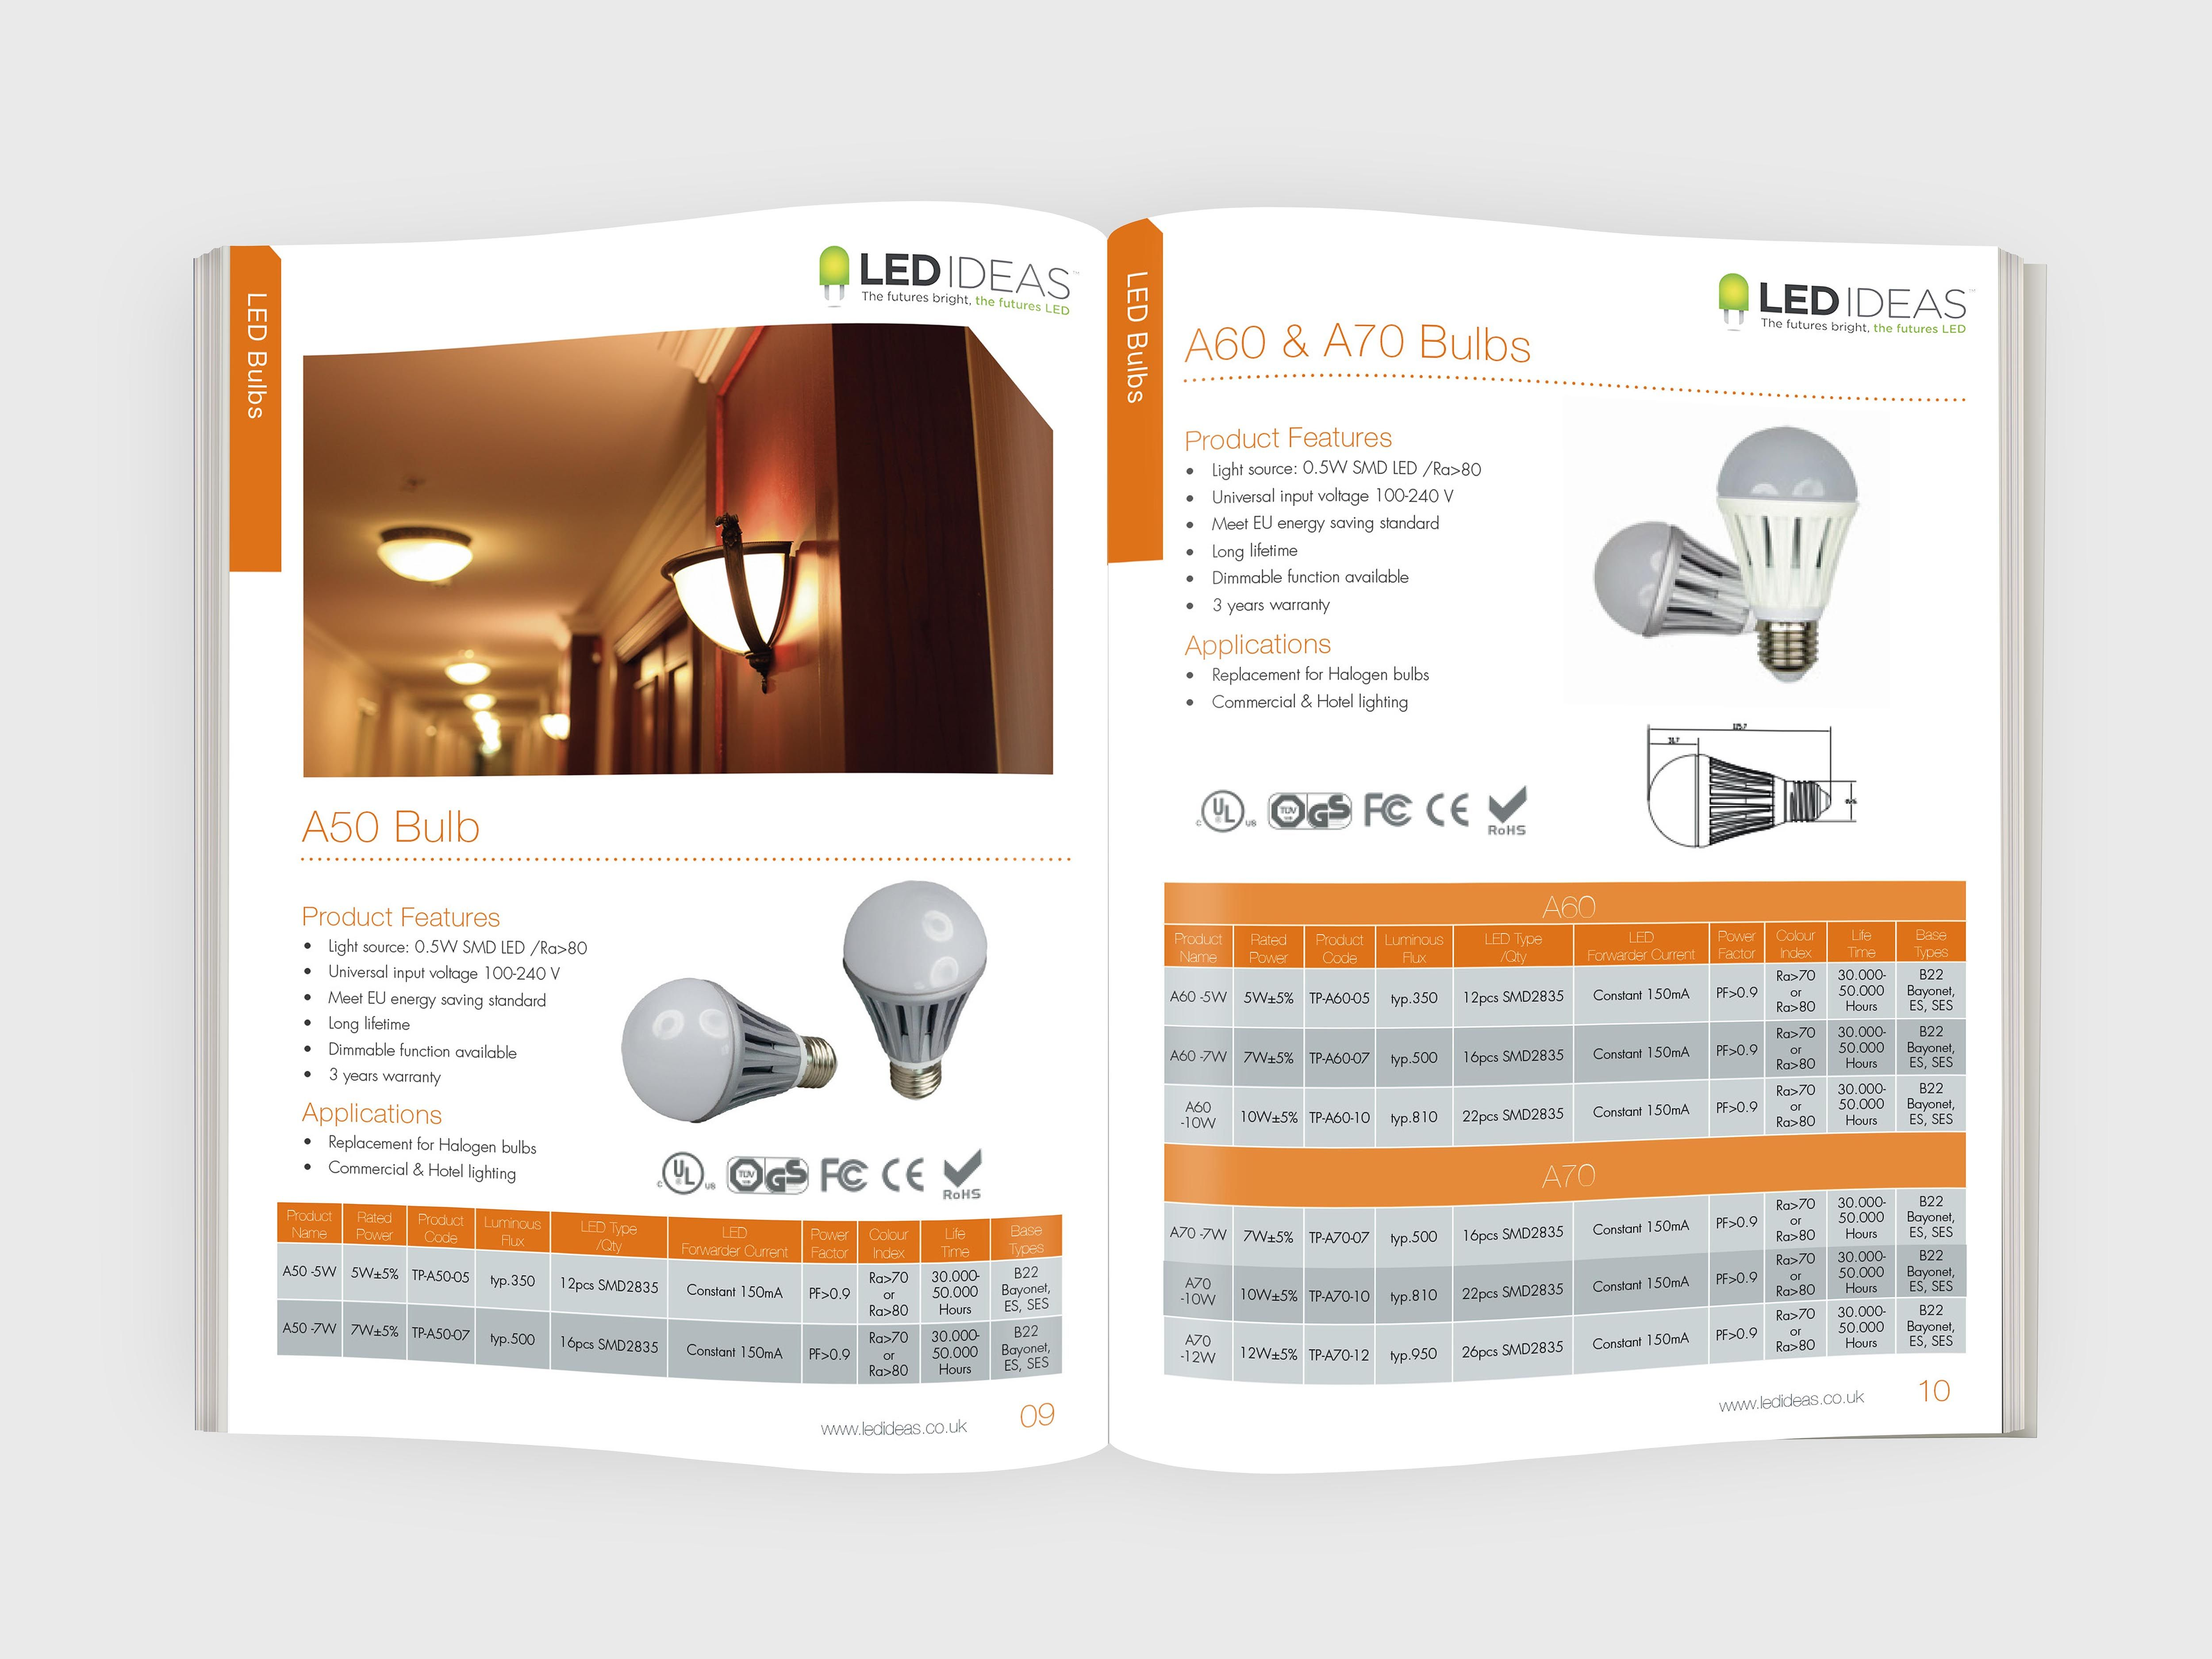 Product Brochures   Led Ideas Came To Me For Their New Products Brochure Design To